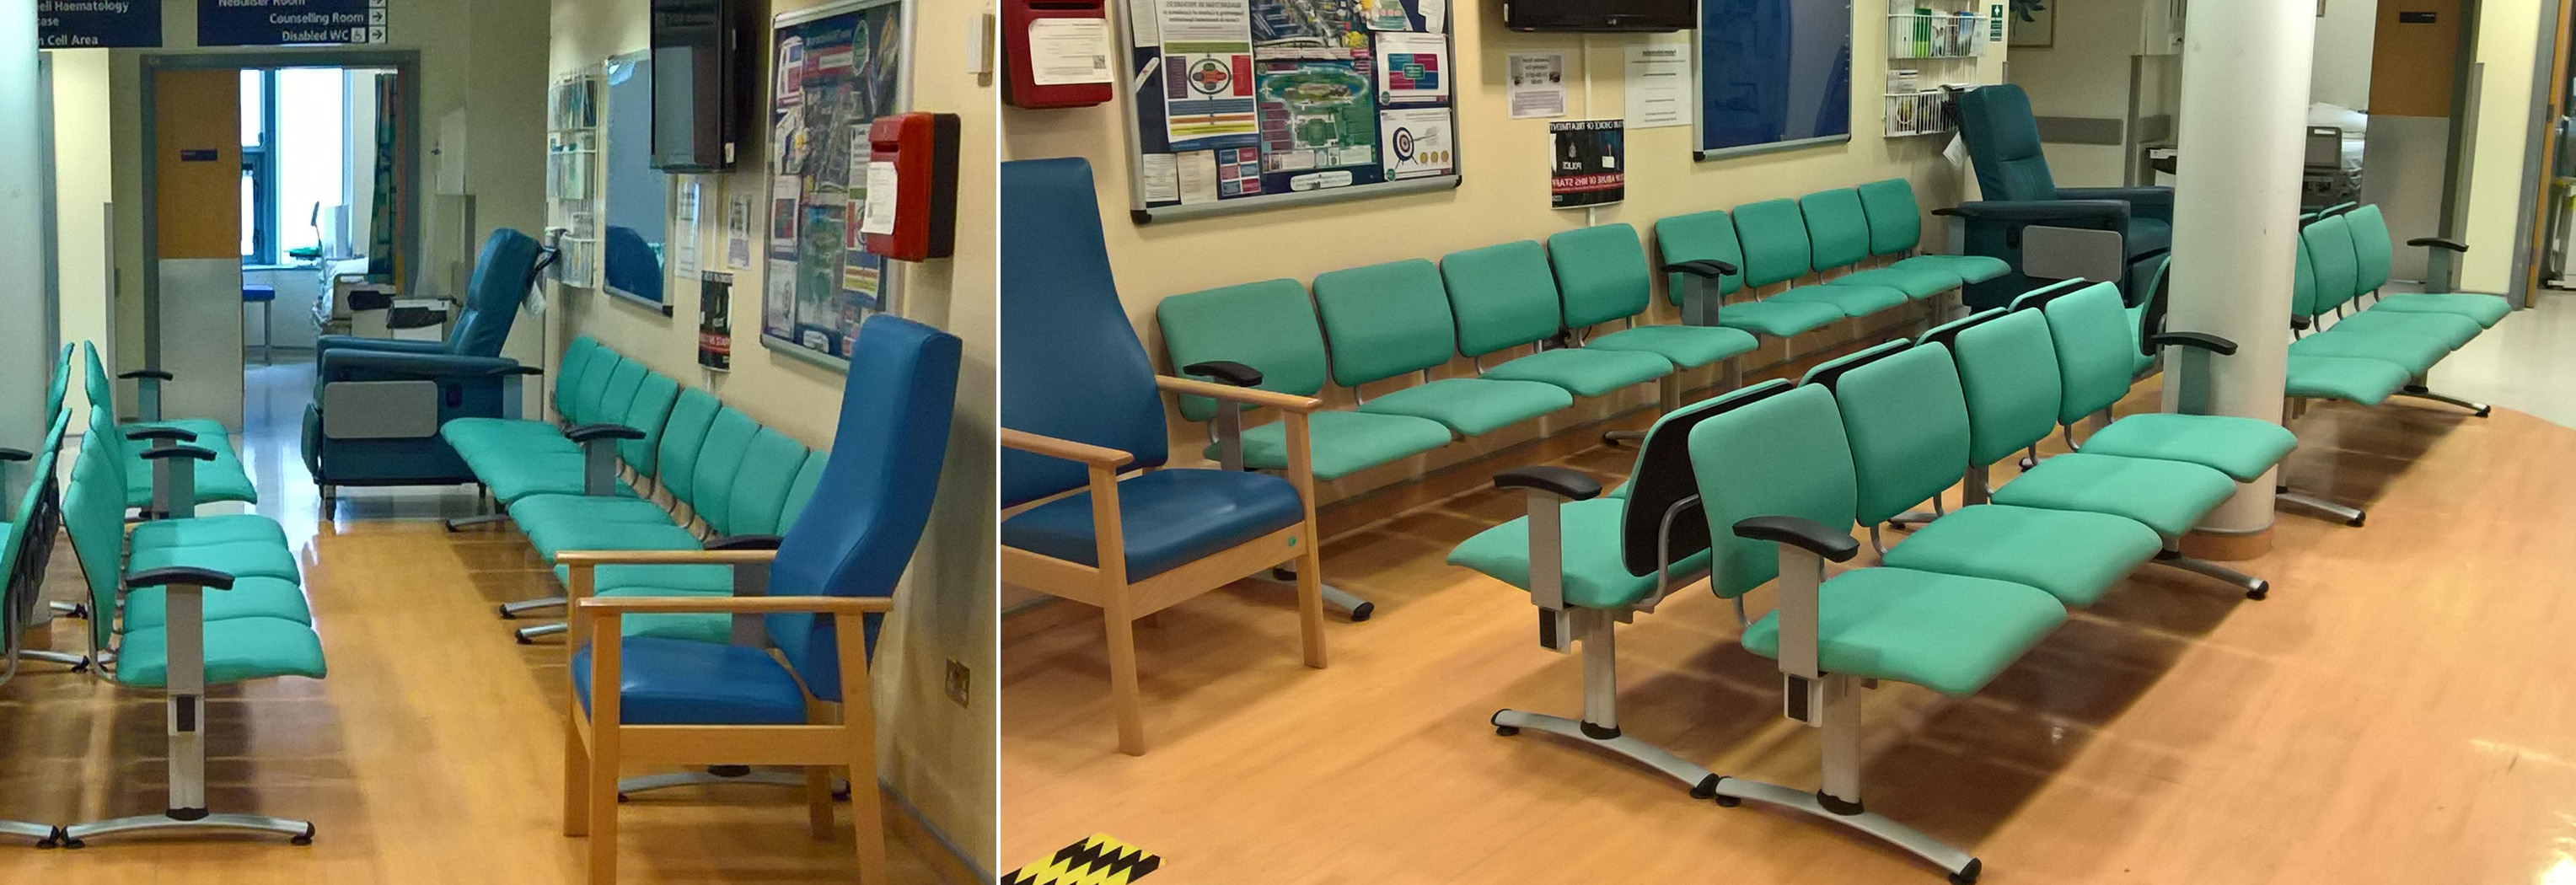 Hospital waiting room with Dandi Beam seating and other waiting room chairs